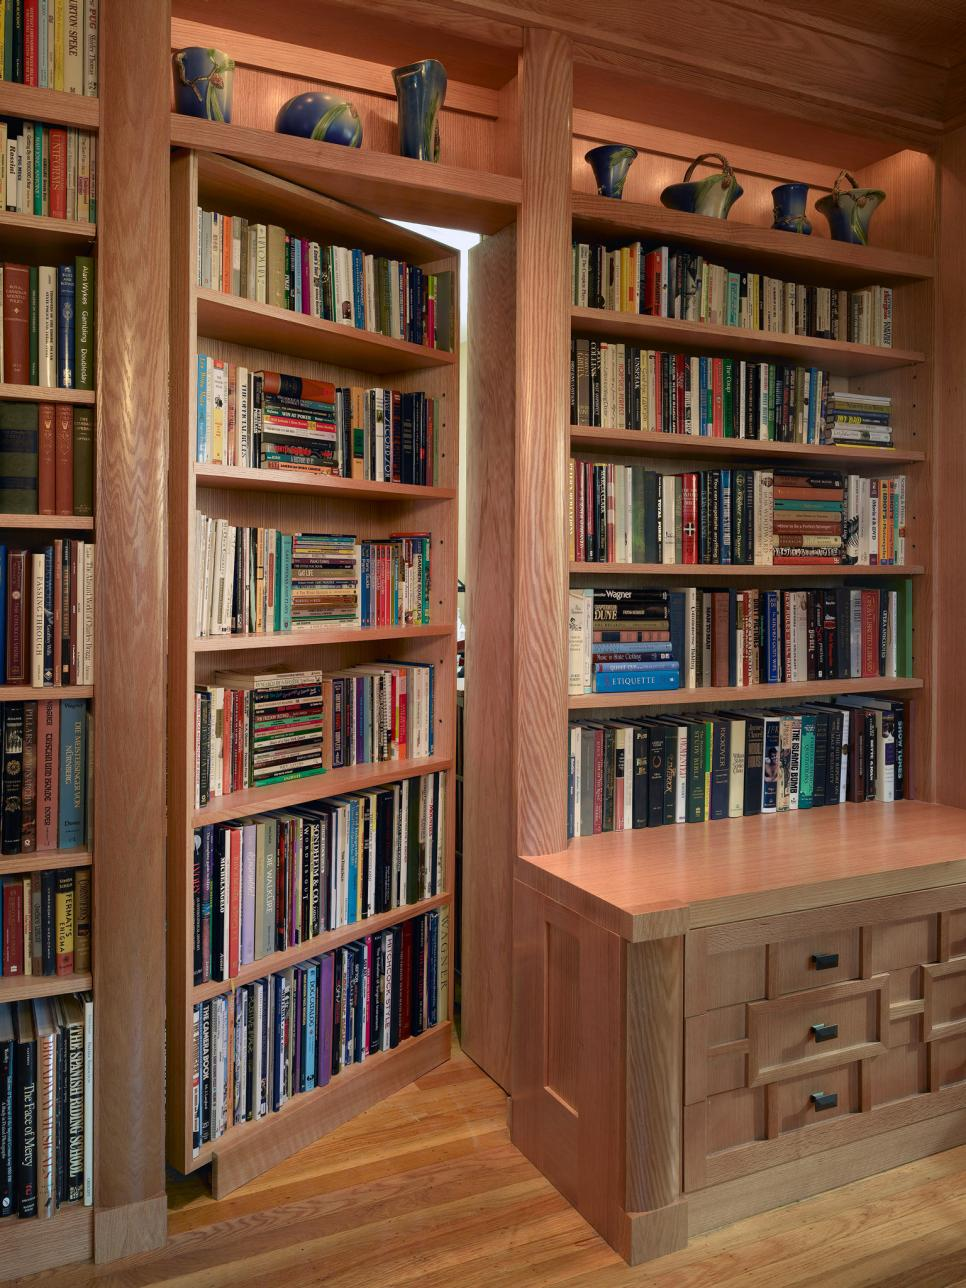 21 beautiful bookcases and creative book storage ideas hgtv Bookshelves in bedroom ideas